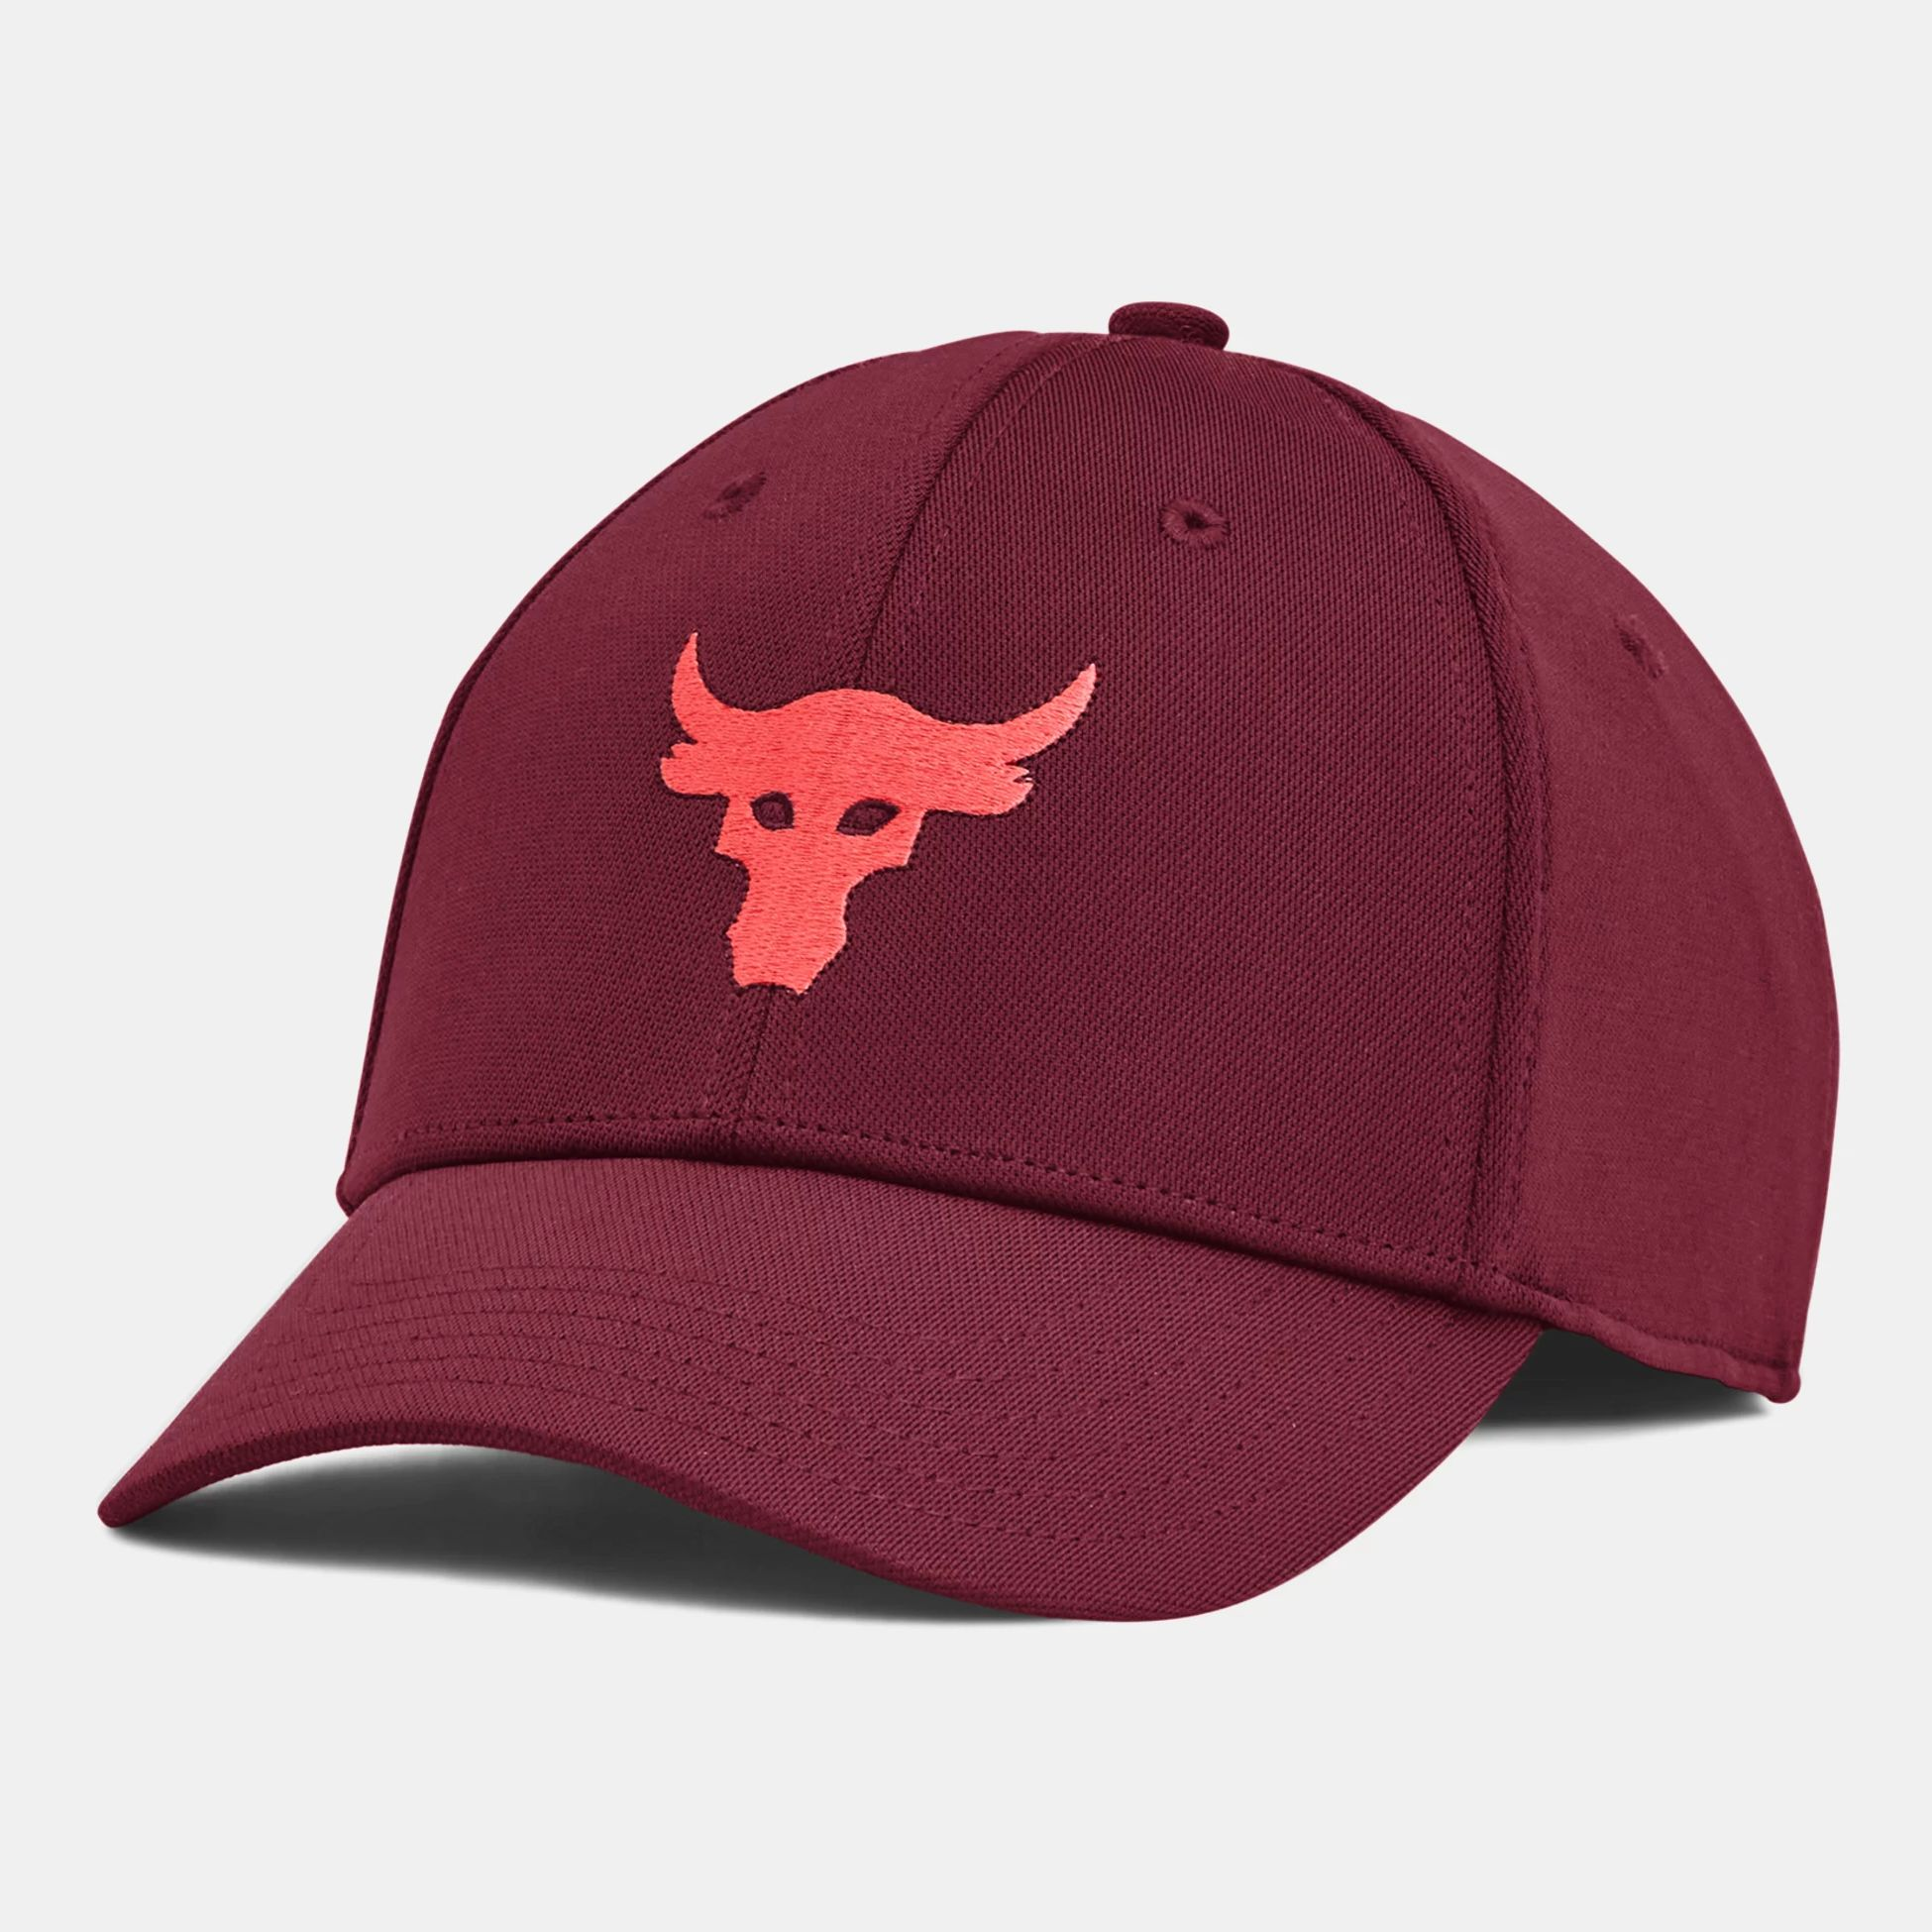 Accessories -  under armour Project Rock Hat